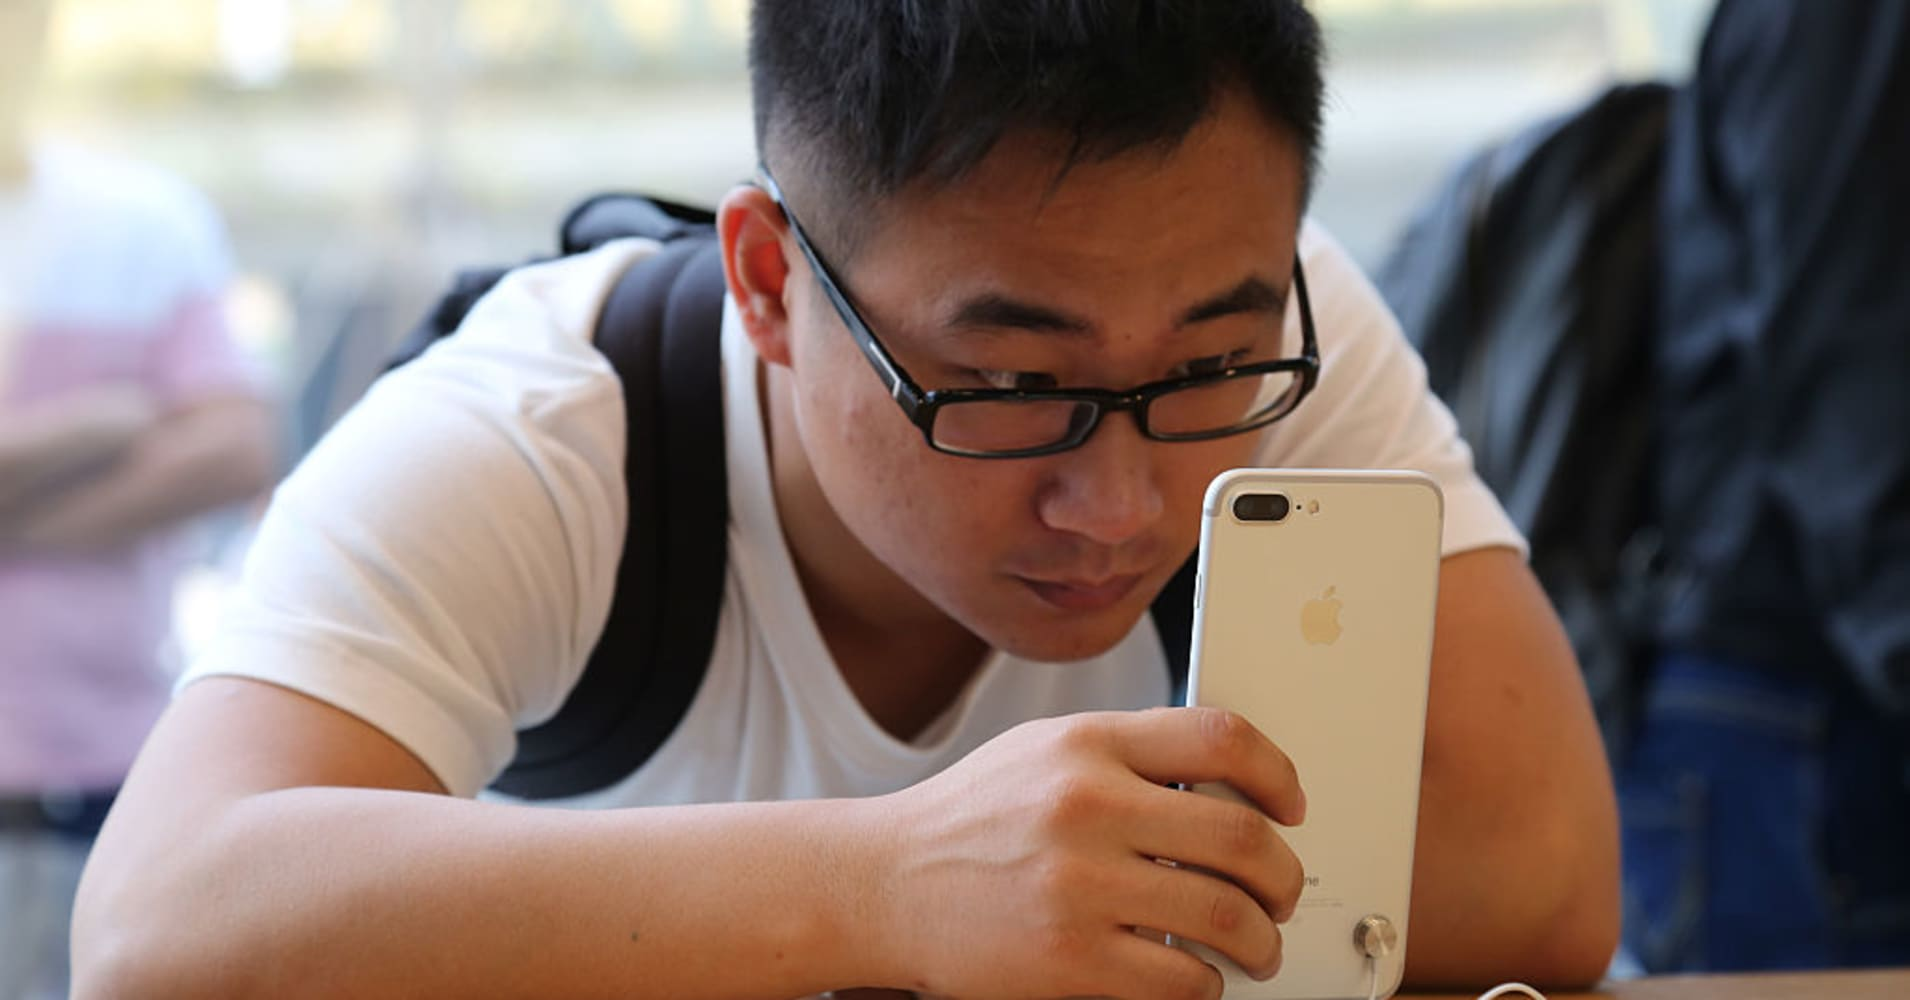 Apple's iPhone 7 Plus was the second-best selling phone in China last year